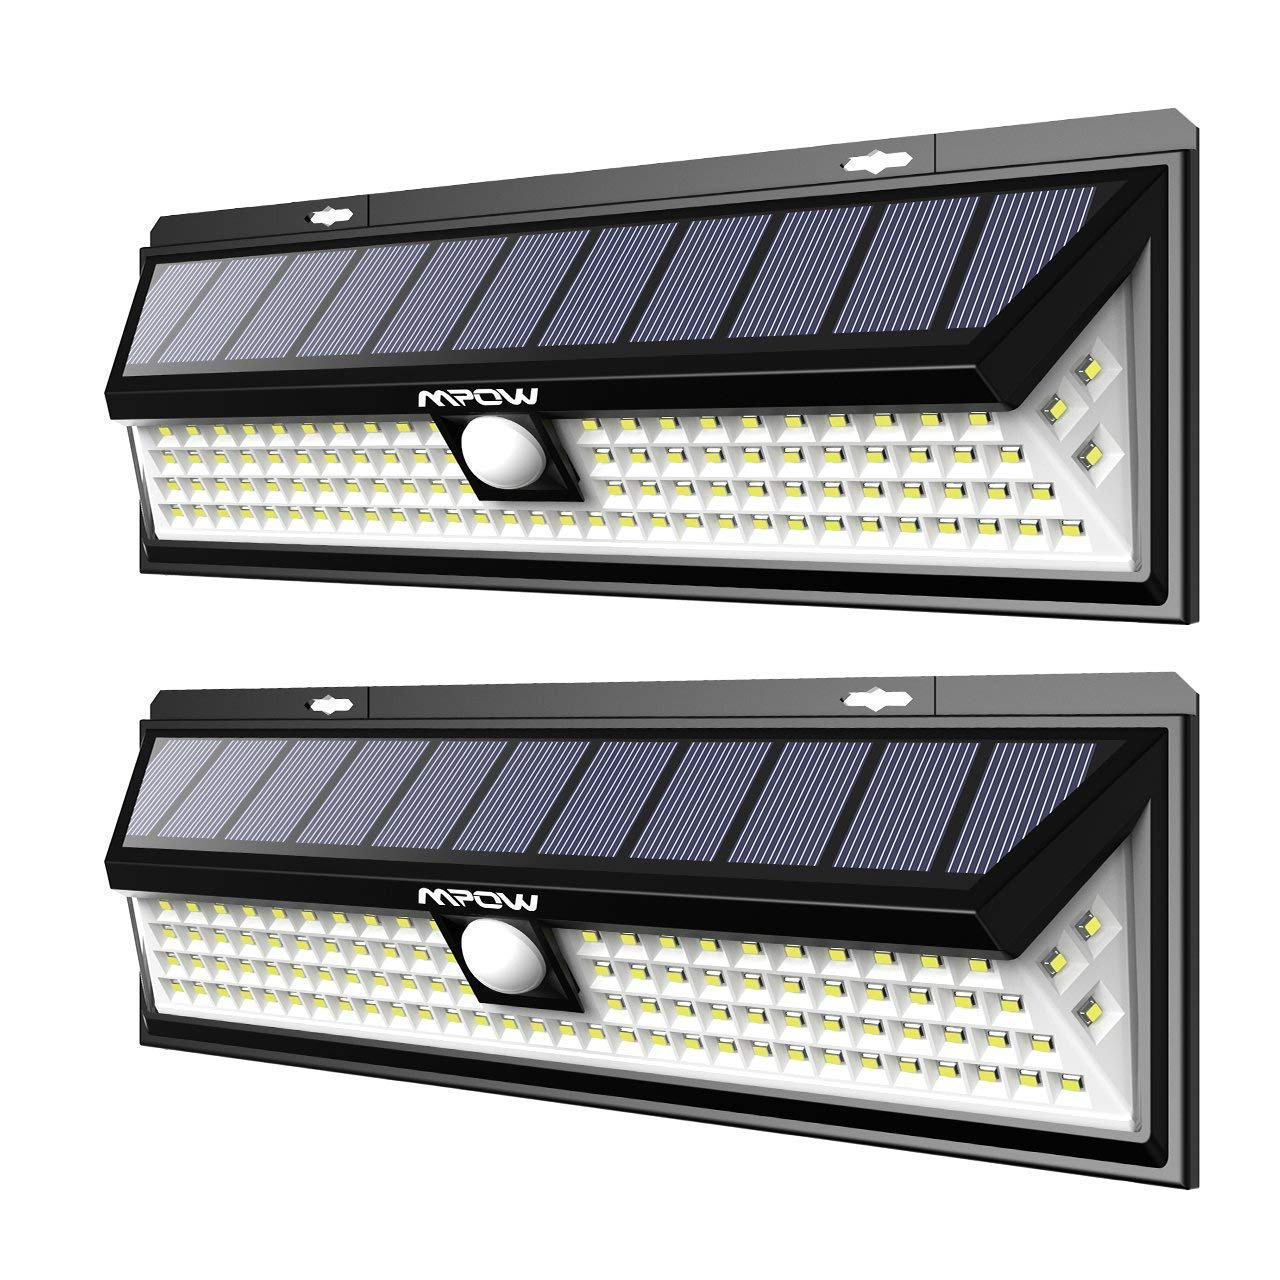 Mpow 102 LED Solar Lights